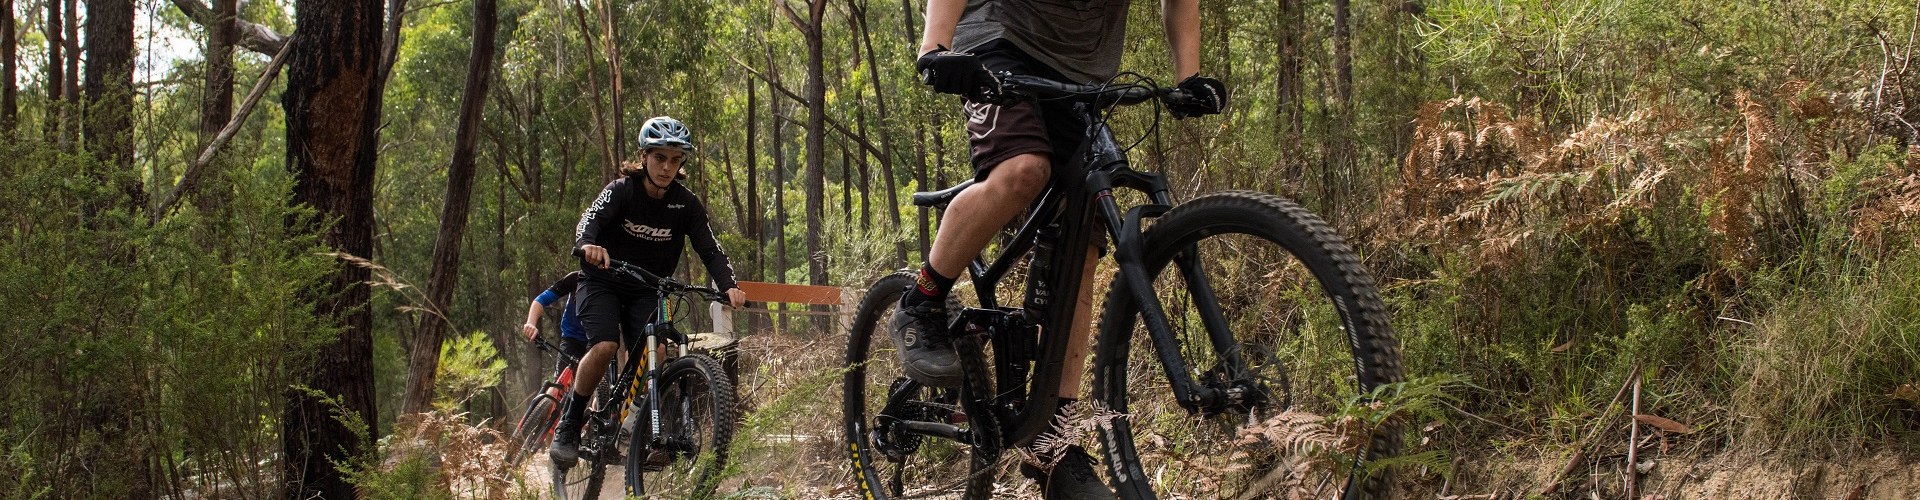 Group of three mountain bikers riding up Hey Hey My My trail in the forest at Wesburn